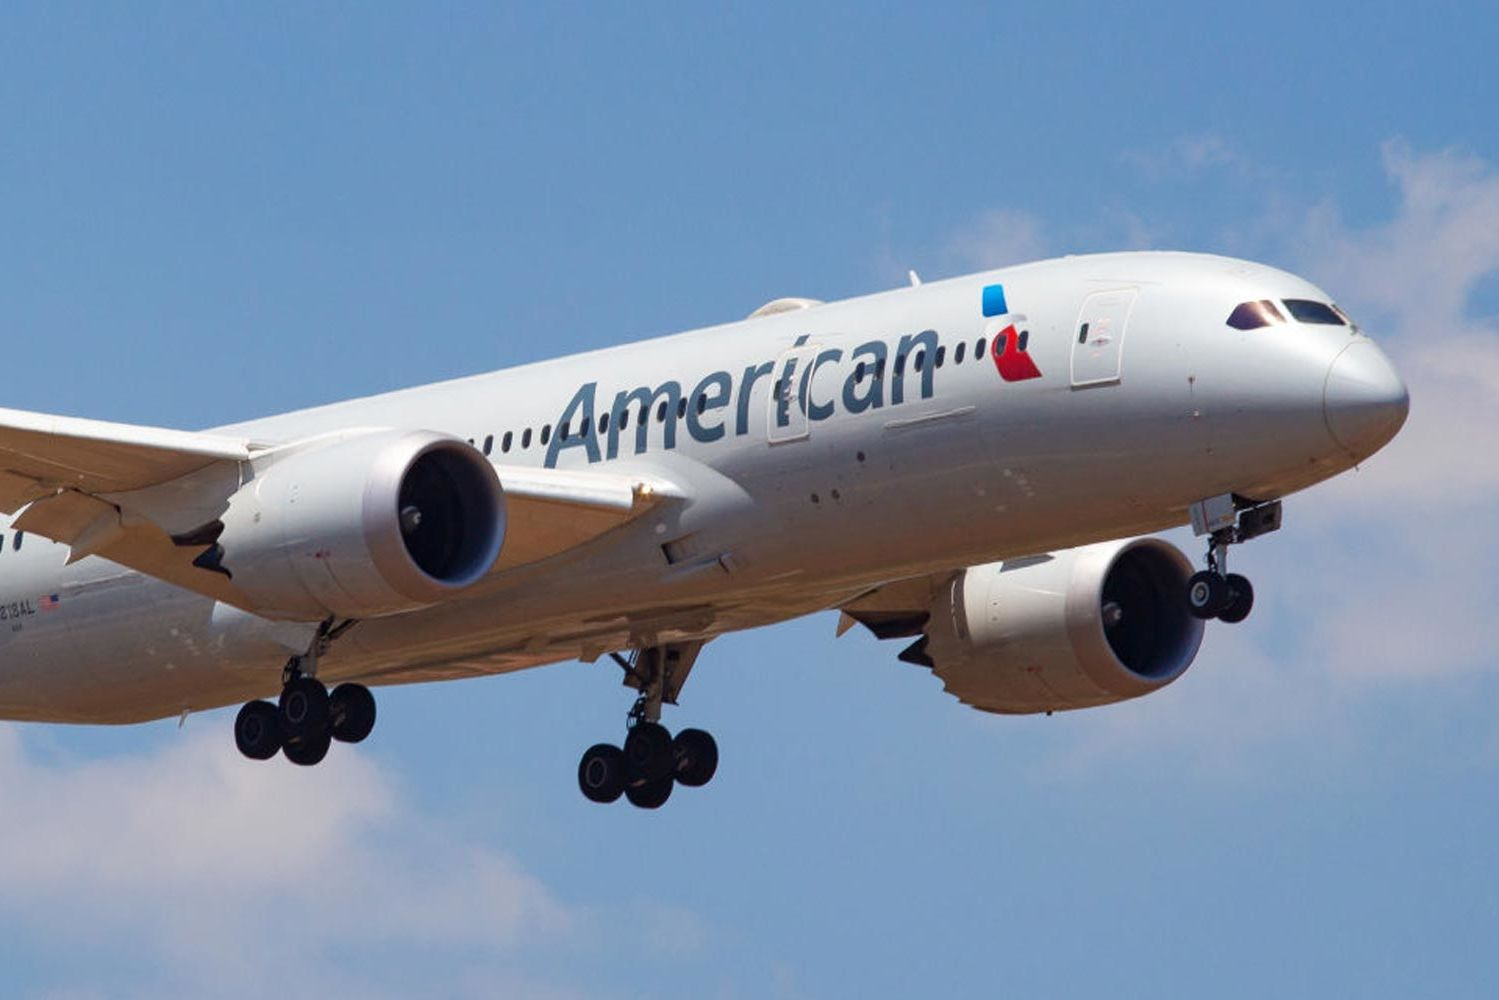 This American Airlines Worker's Tarmac Dance Is 'Pure Joy' to Watch